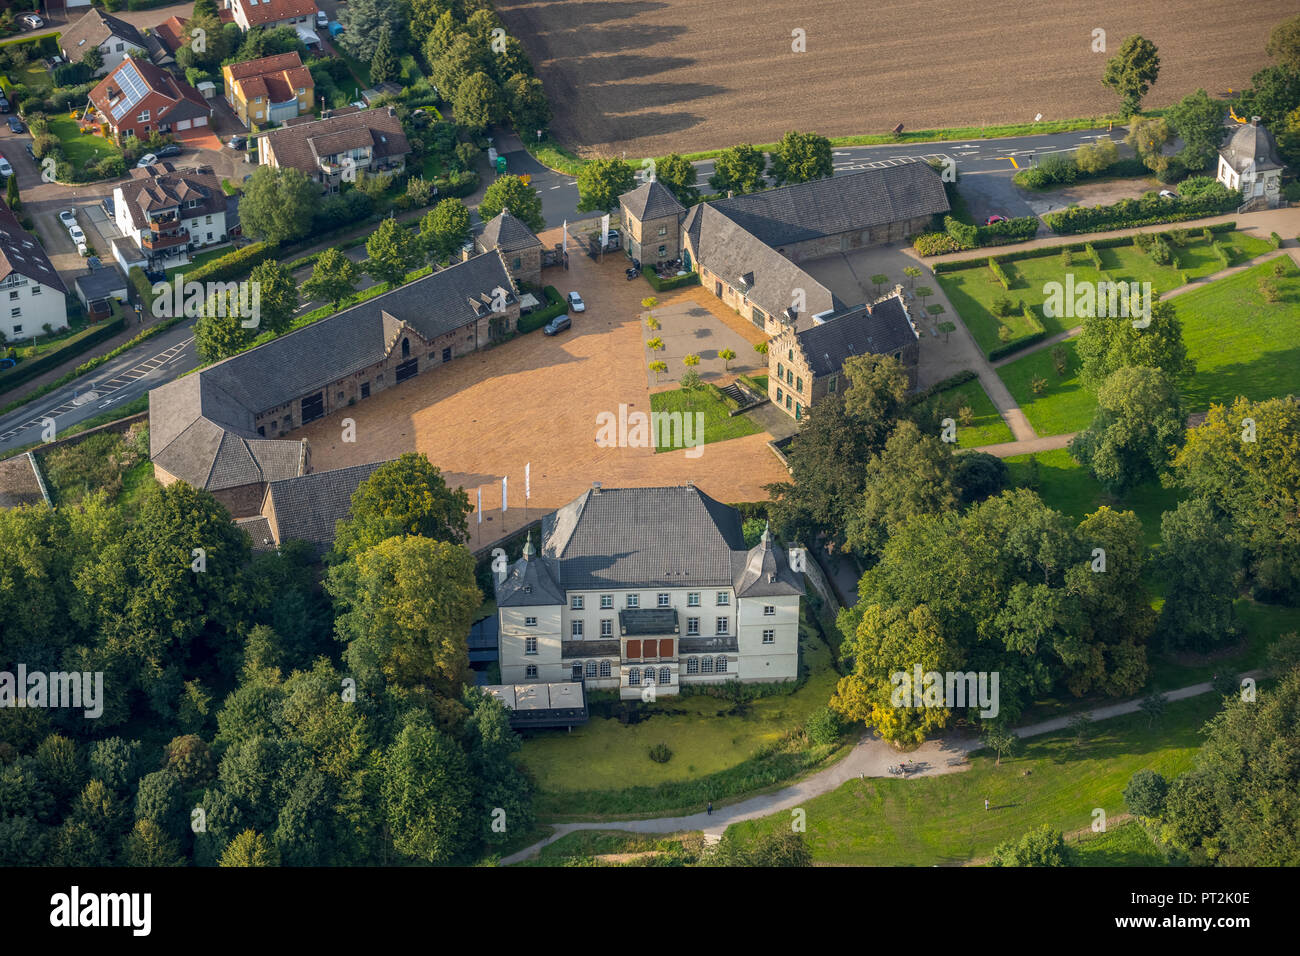 Haus Opherdicke is a moated castle and former manor in Holzwickede district Opherdicke, Frank Brabant Collection, exhibition venue, venue, Holzwickede, Ruhr area, North Rhine-Westphalia, Germany Stock Photo